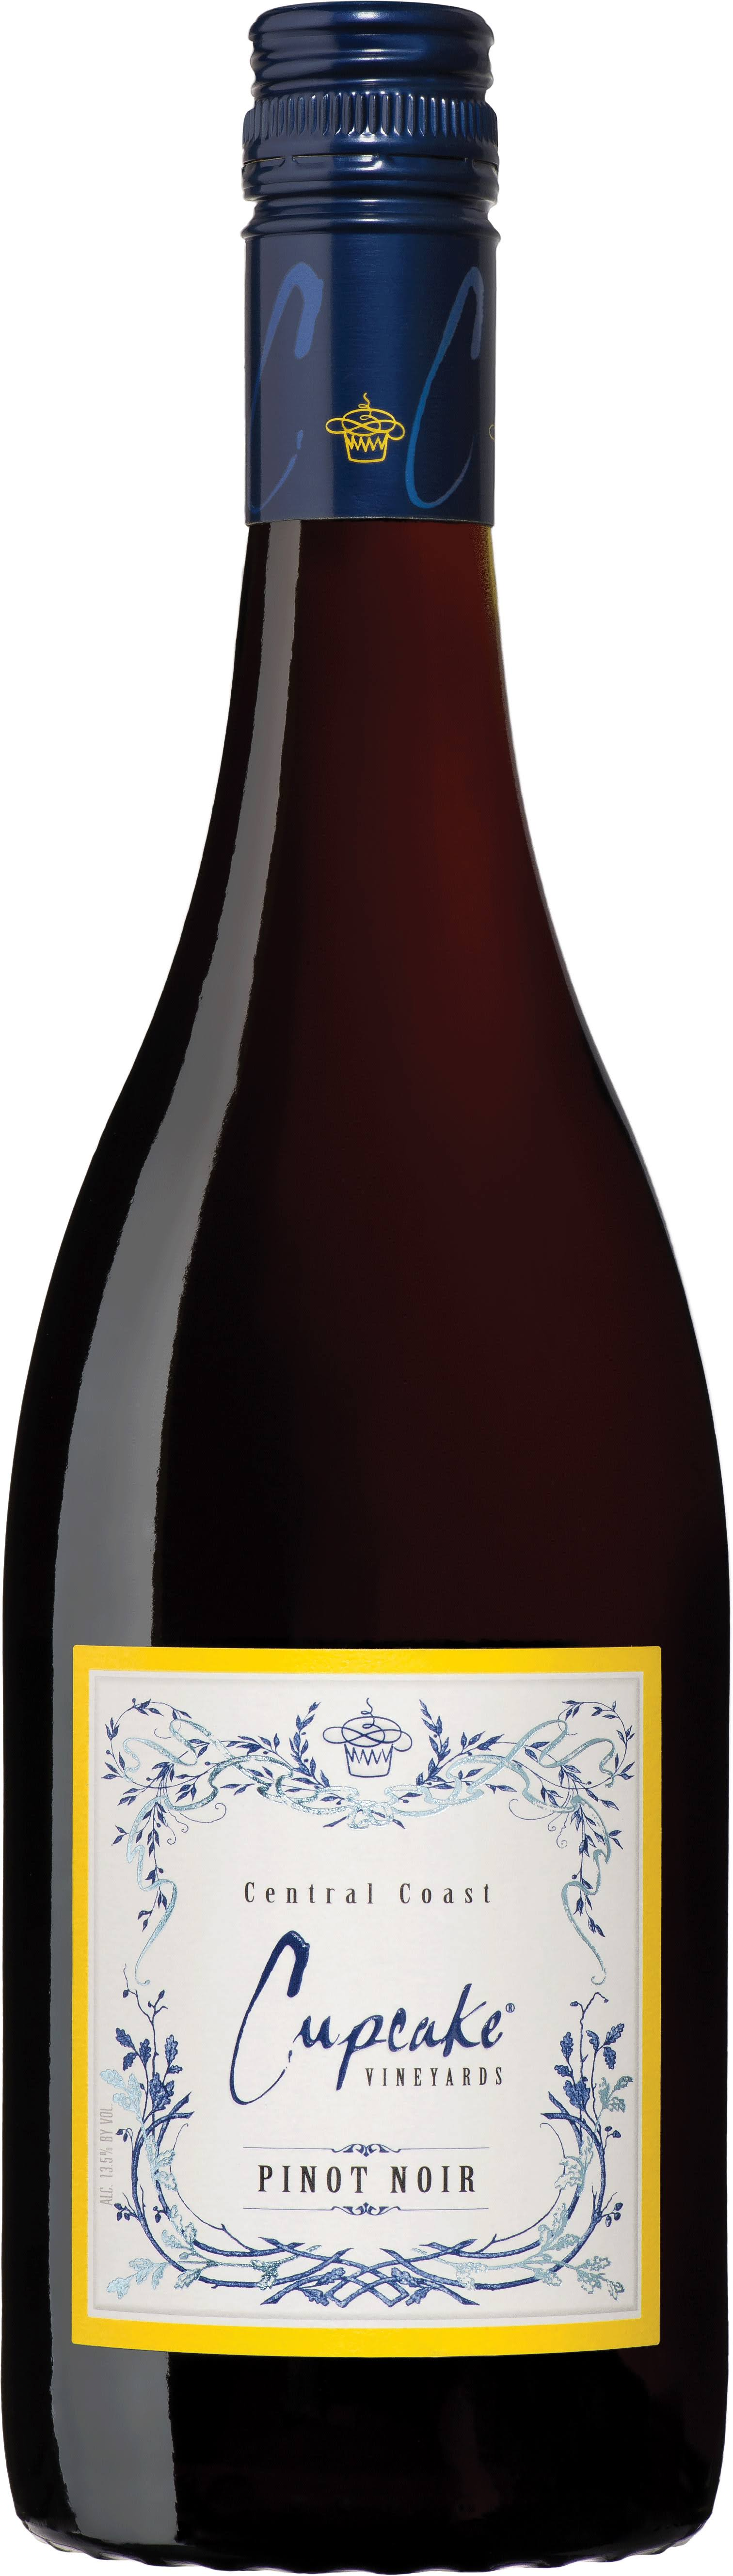 Cupcake Vineyards Pinot Noir - 750ml